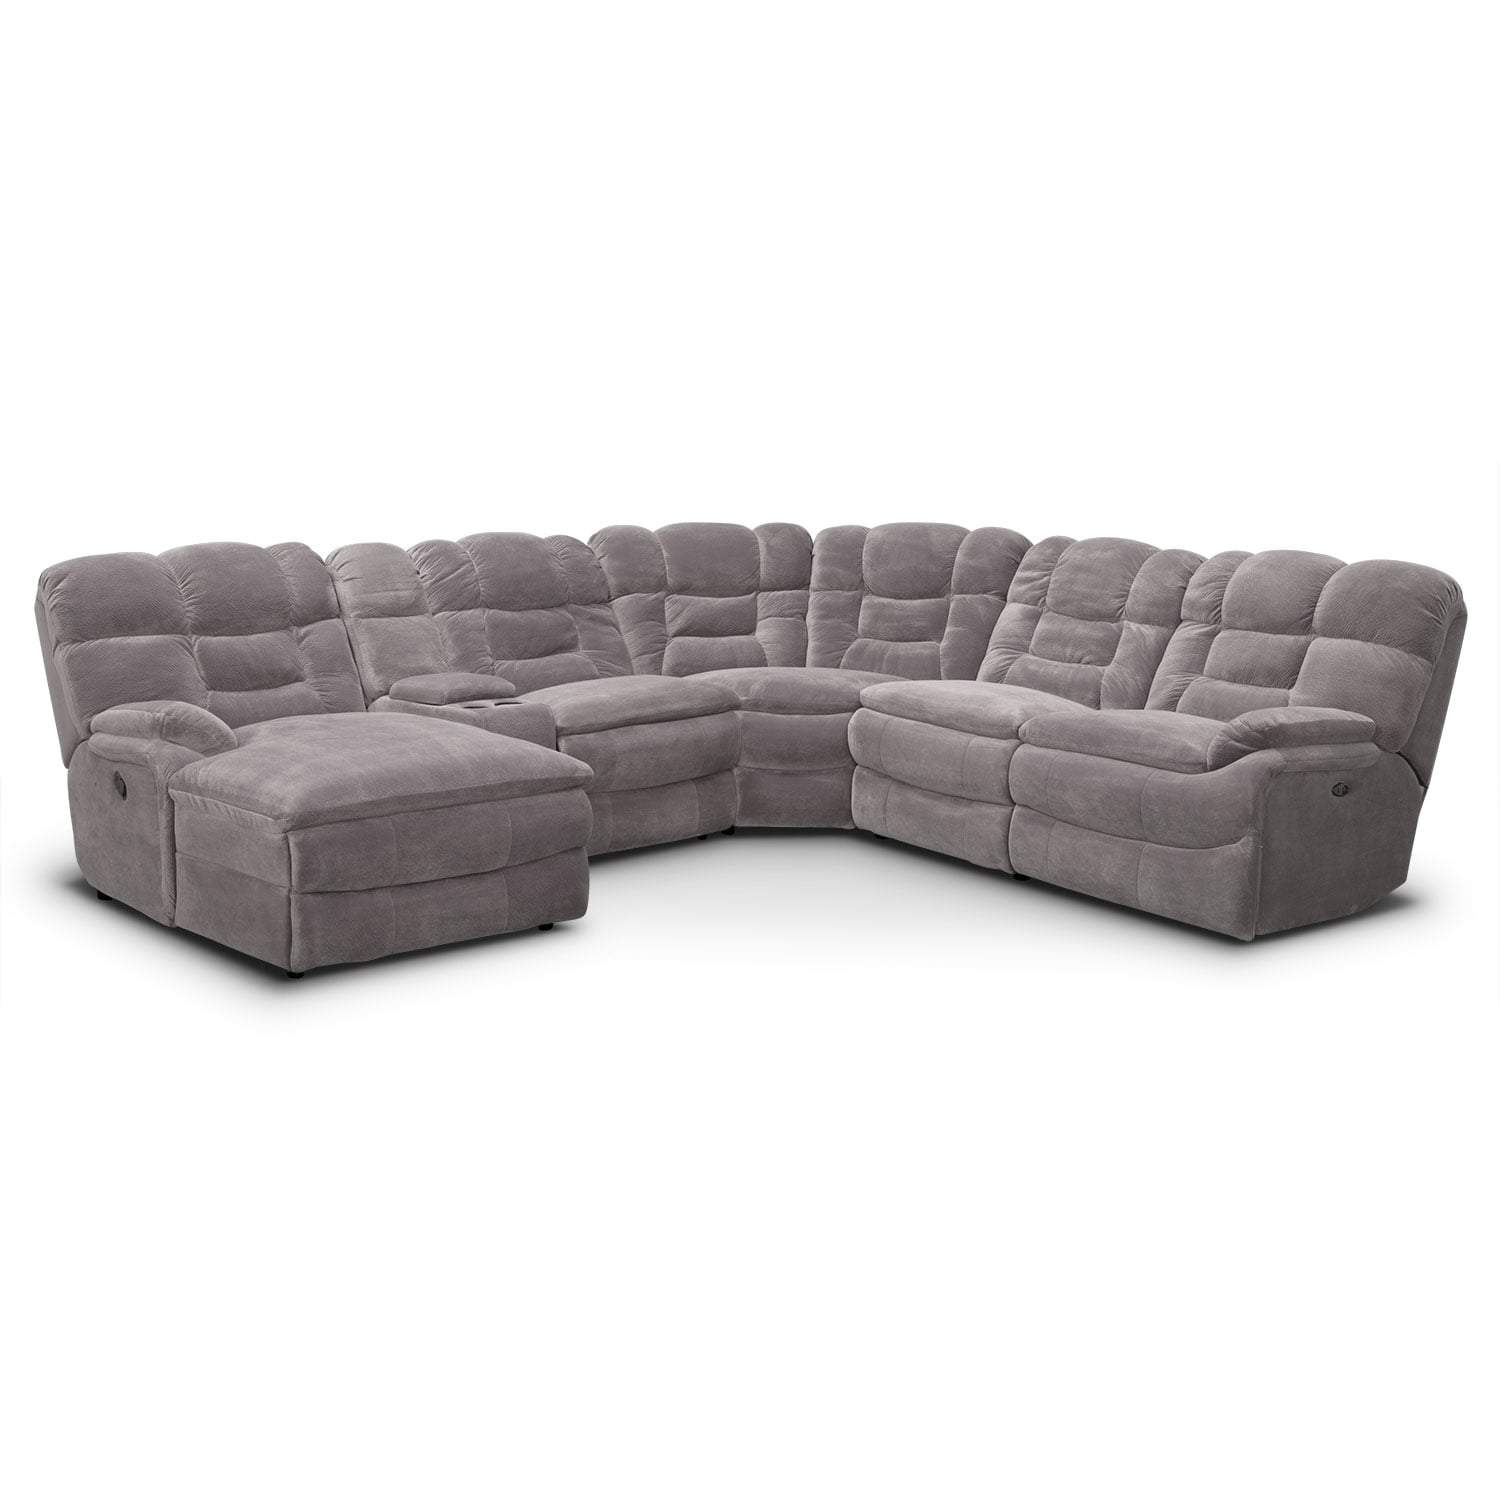 Living Room Furniture - Big Softie 6-Piece Power Reclining Sectional with Left-Facing Chaise - Gray